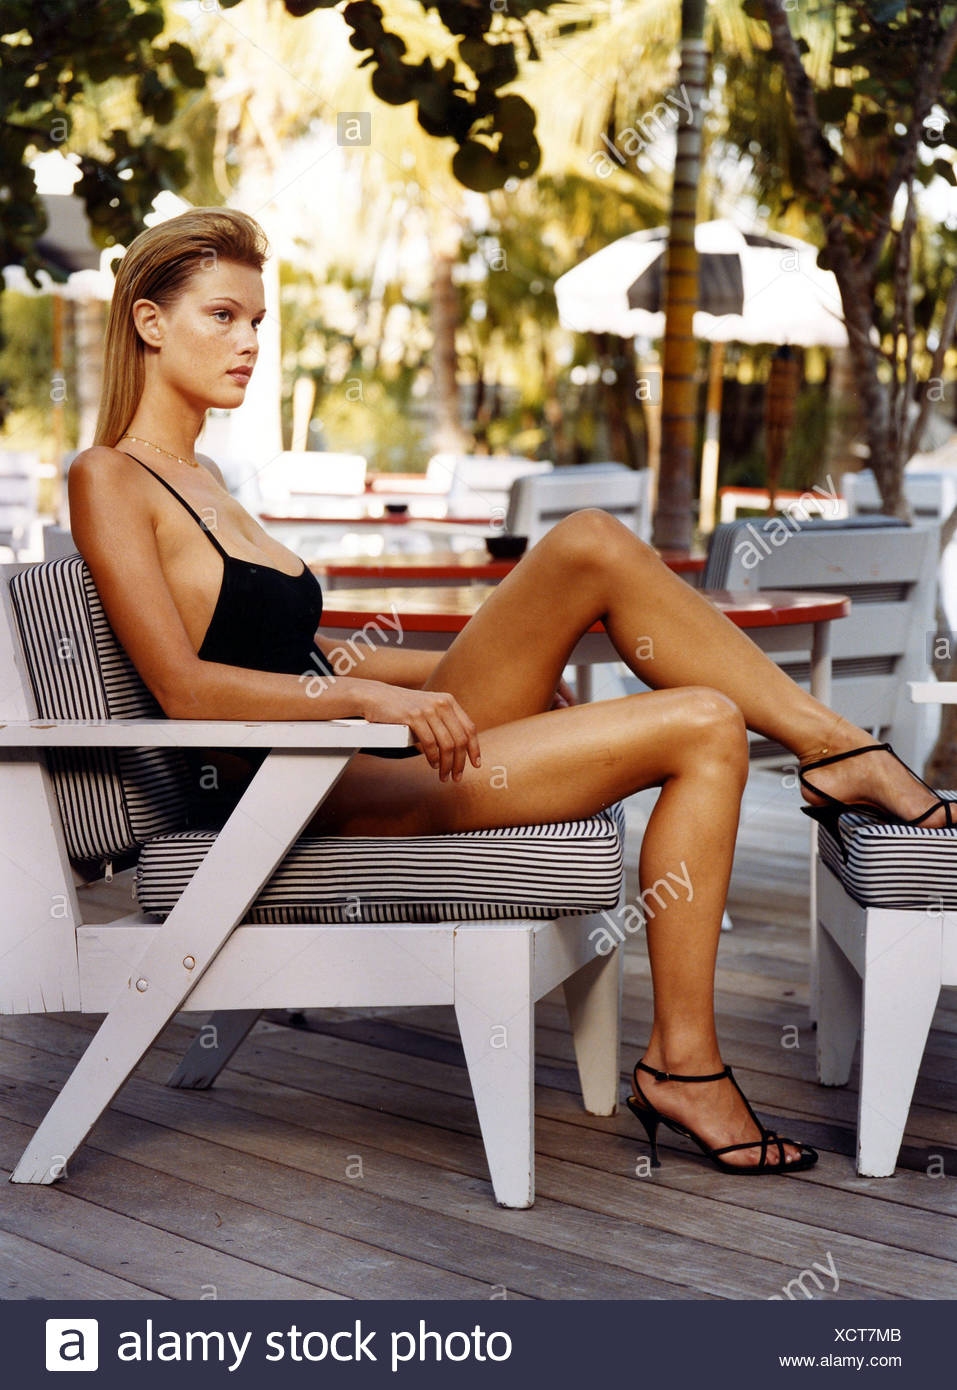 Female dark blonde straight hair worn tucked behind her ears wearing a plain black swimsuit thin straps and strappy black high - Stock Image